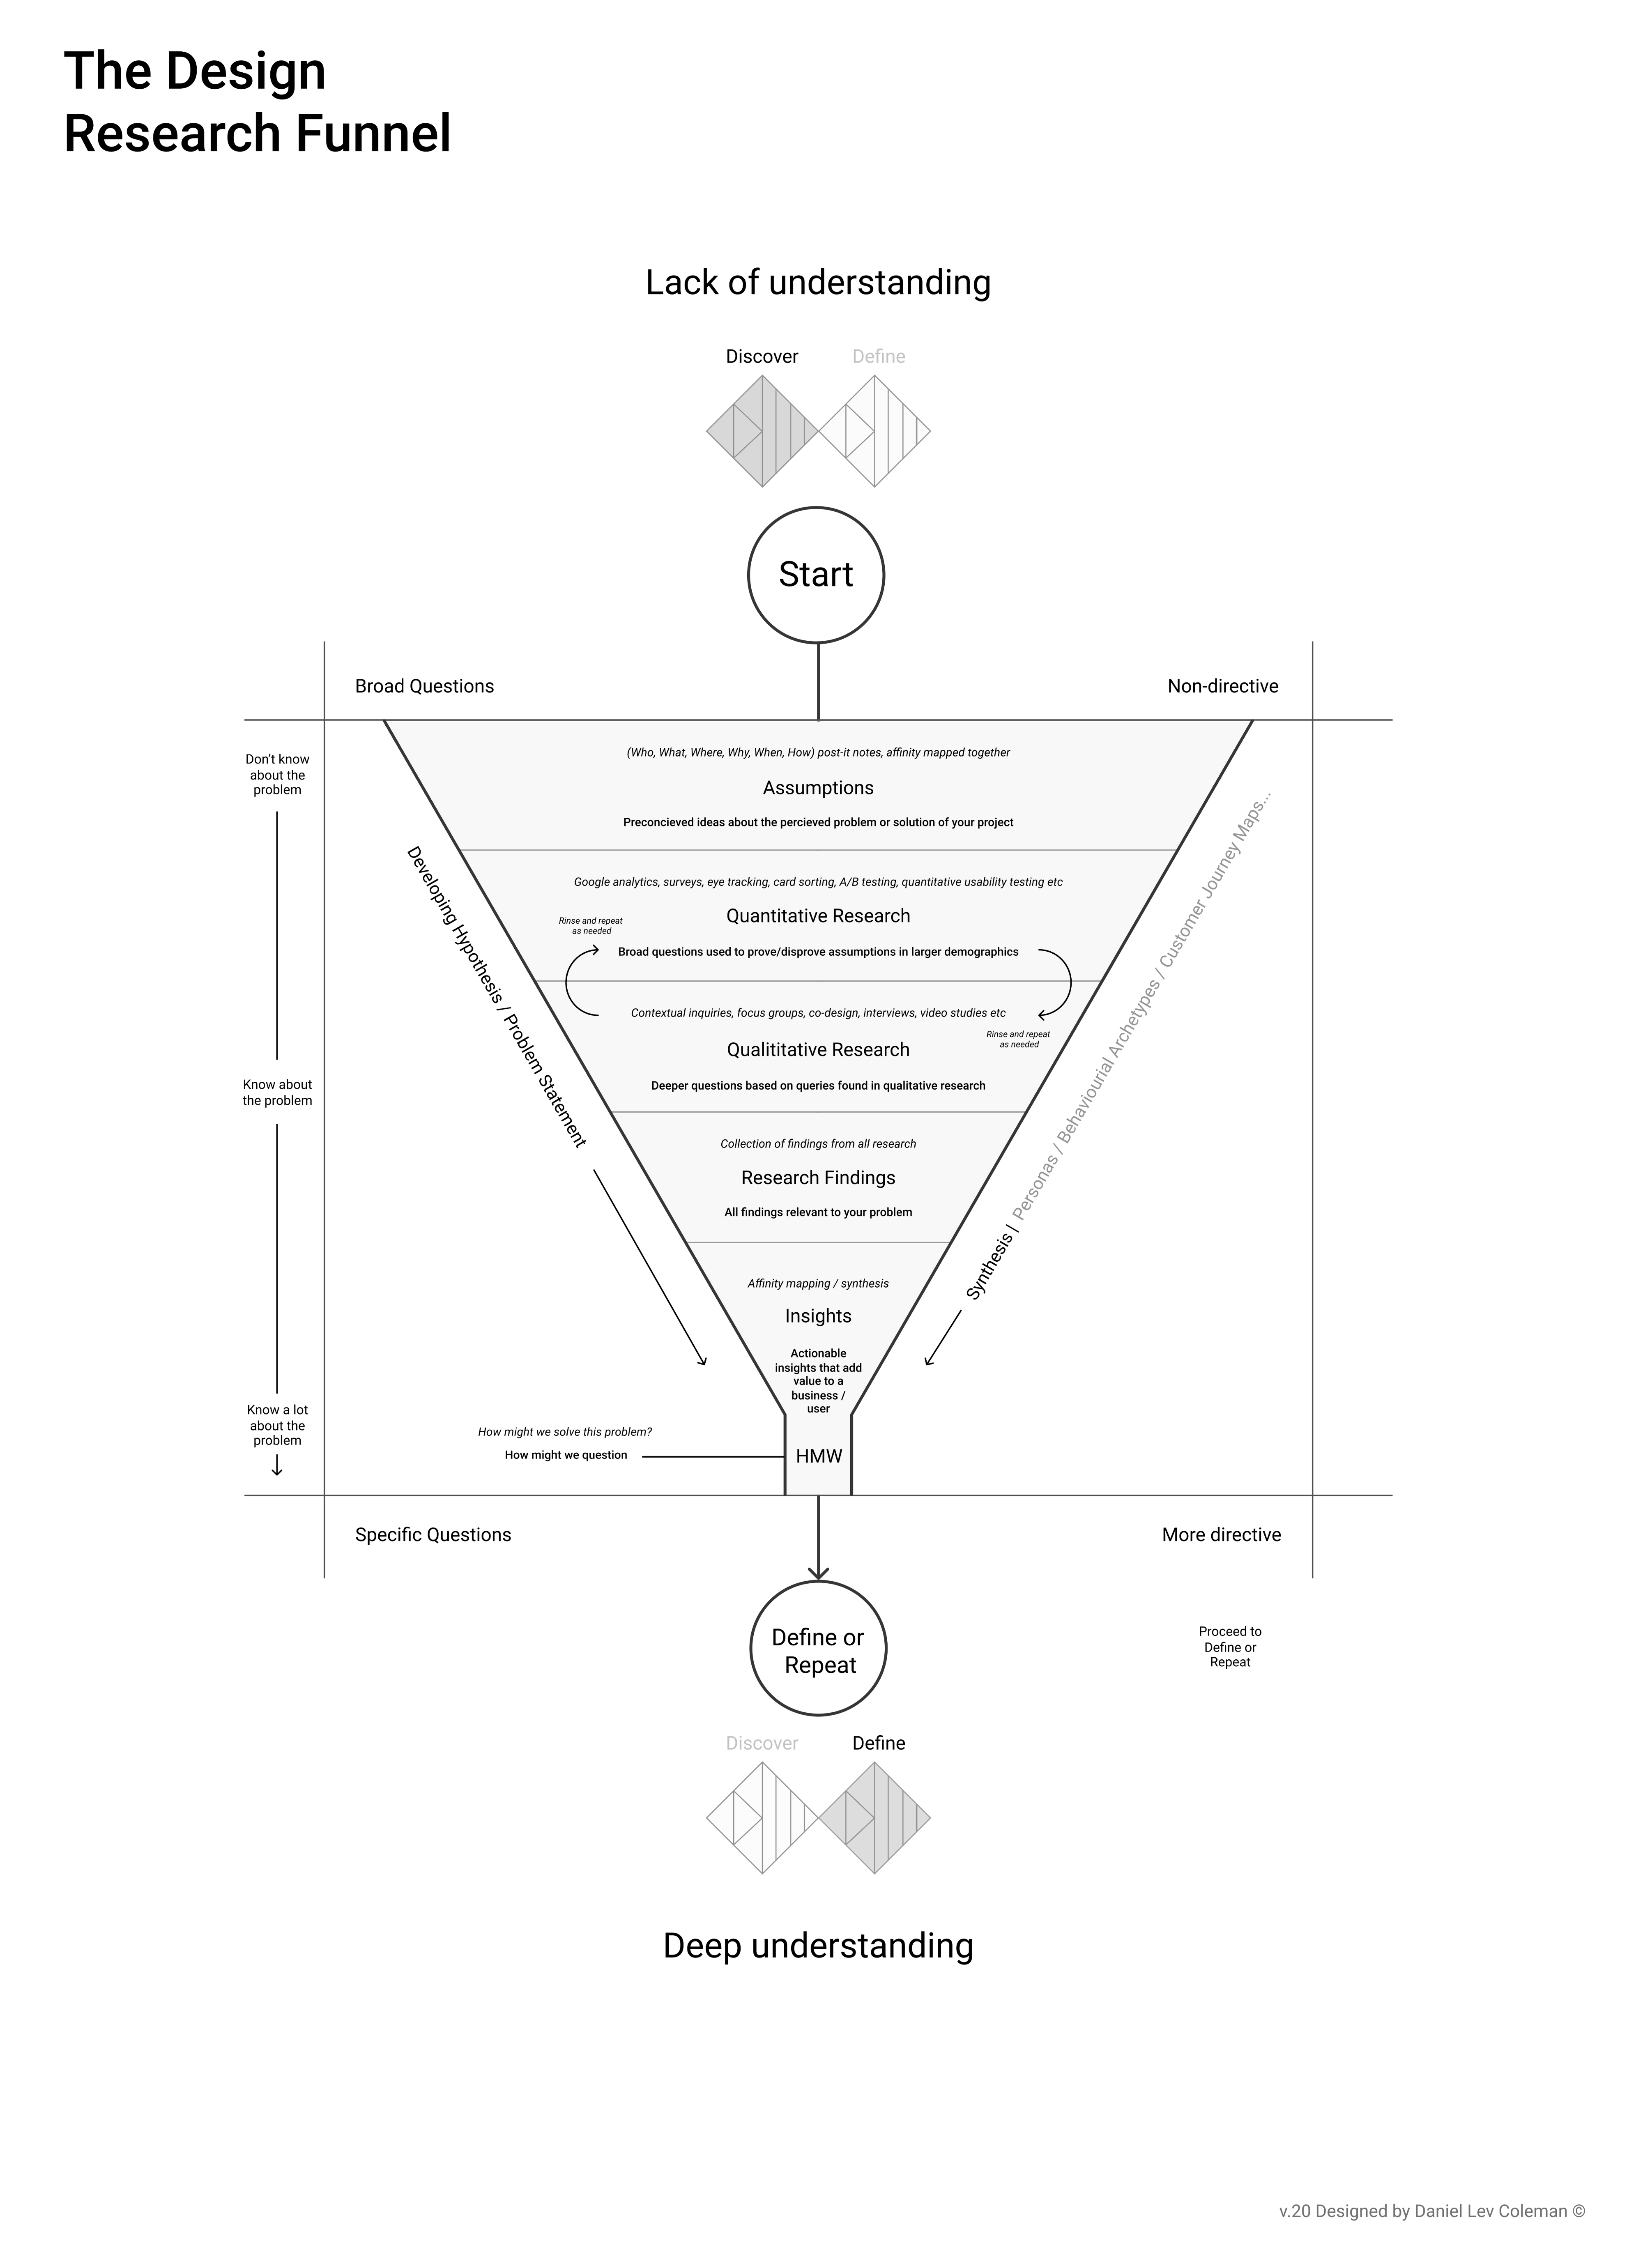 Staying problem focused — the Design Research Funnel